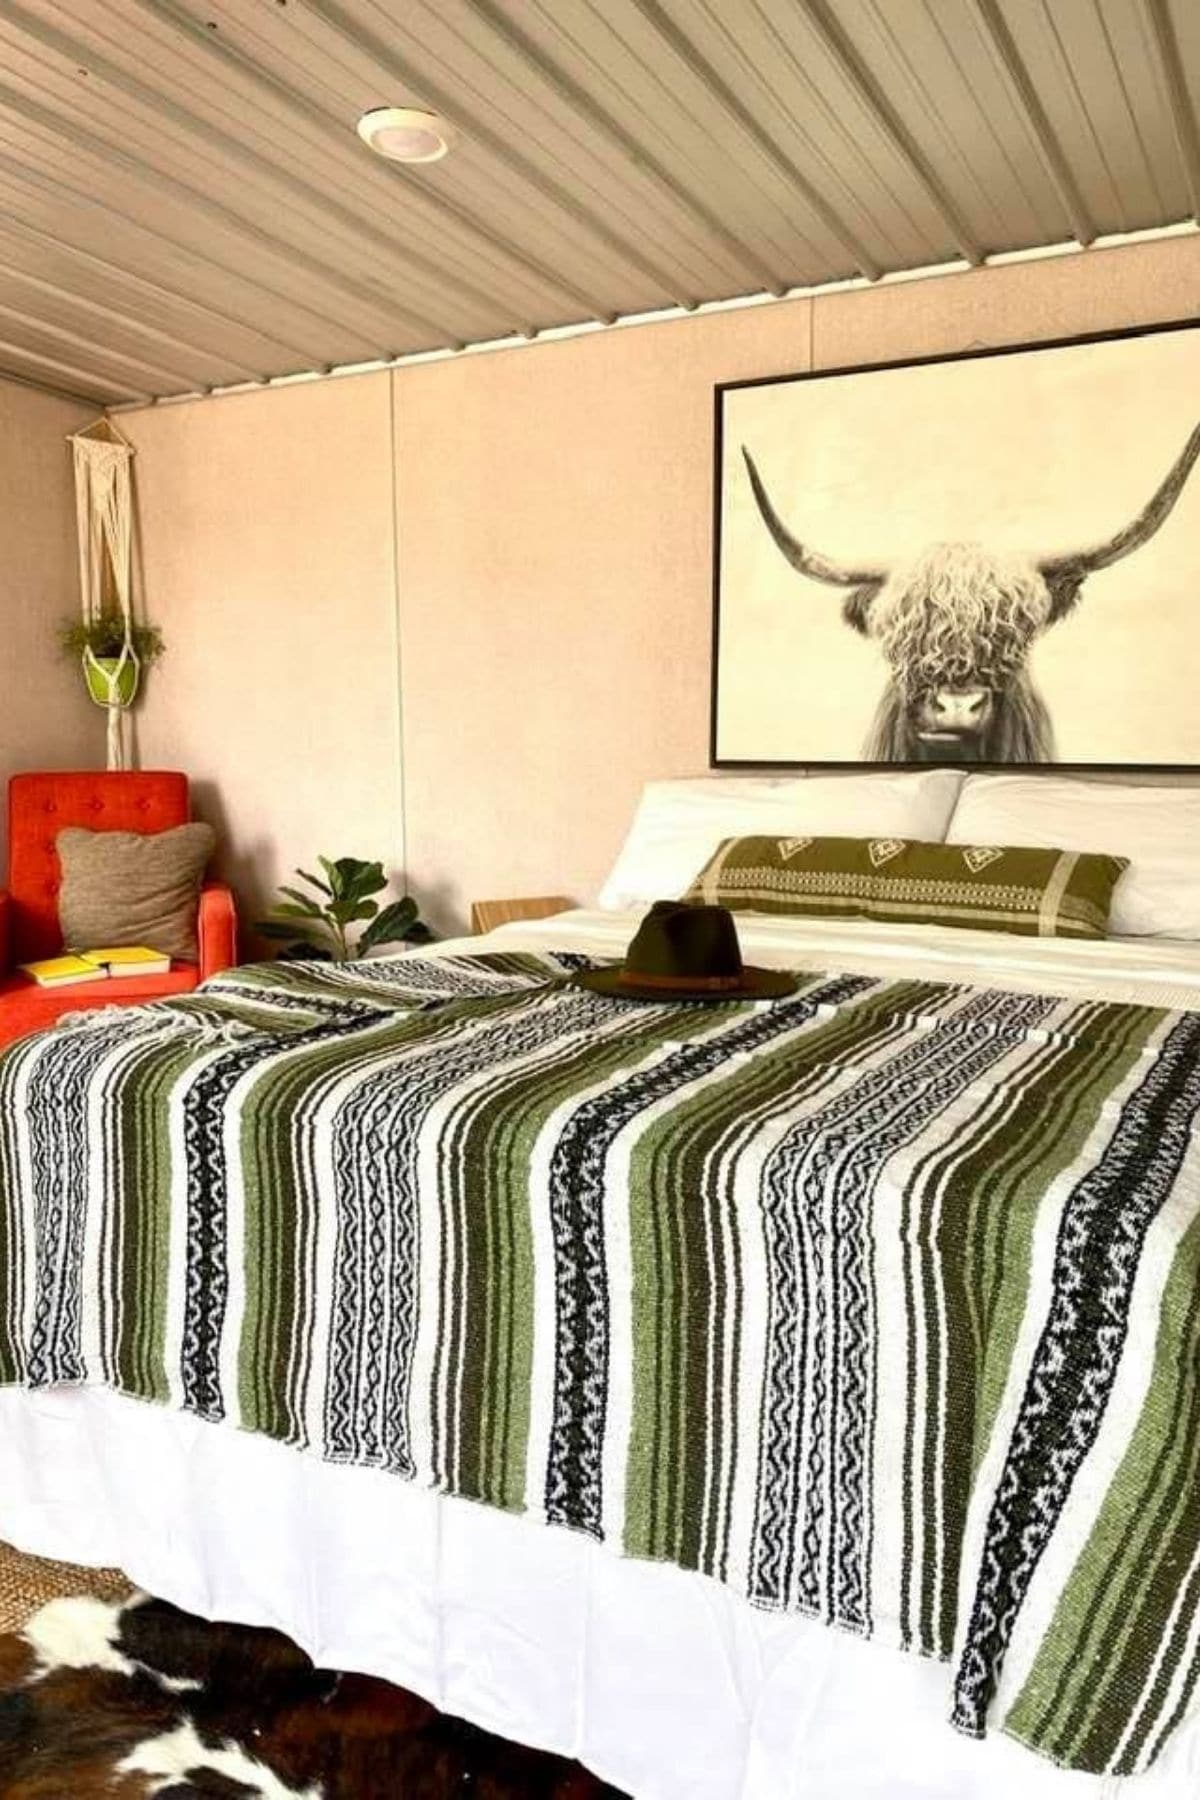 Bed against wall with striped blanket beneath bull decor